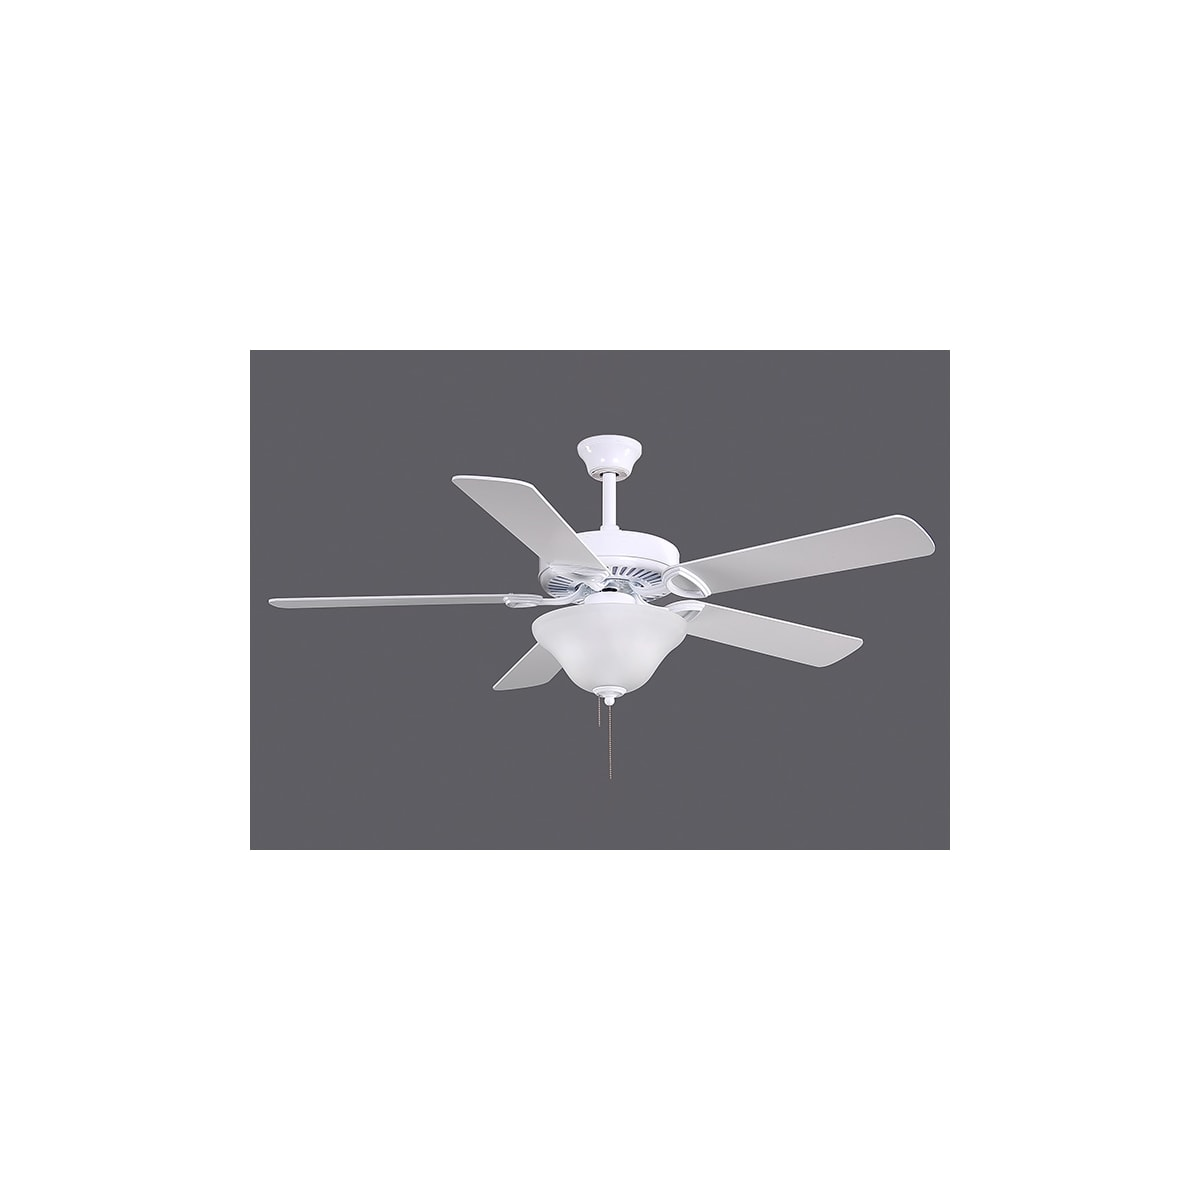 Atlas AM-USA-WH-LK2x13-42 America Ceiling Fan in Gloss White with Reversible White/Wood Tone blades